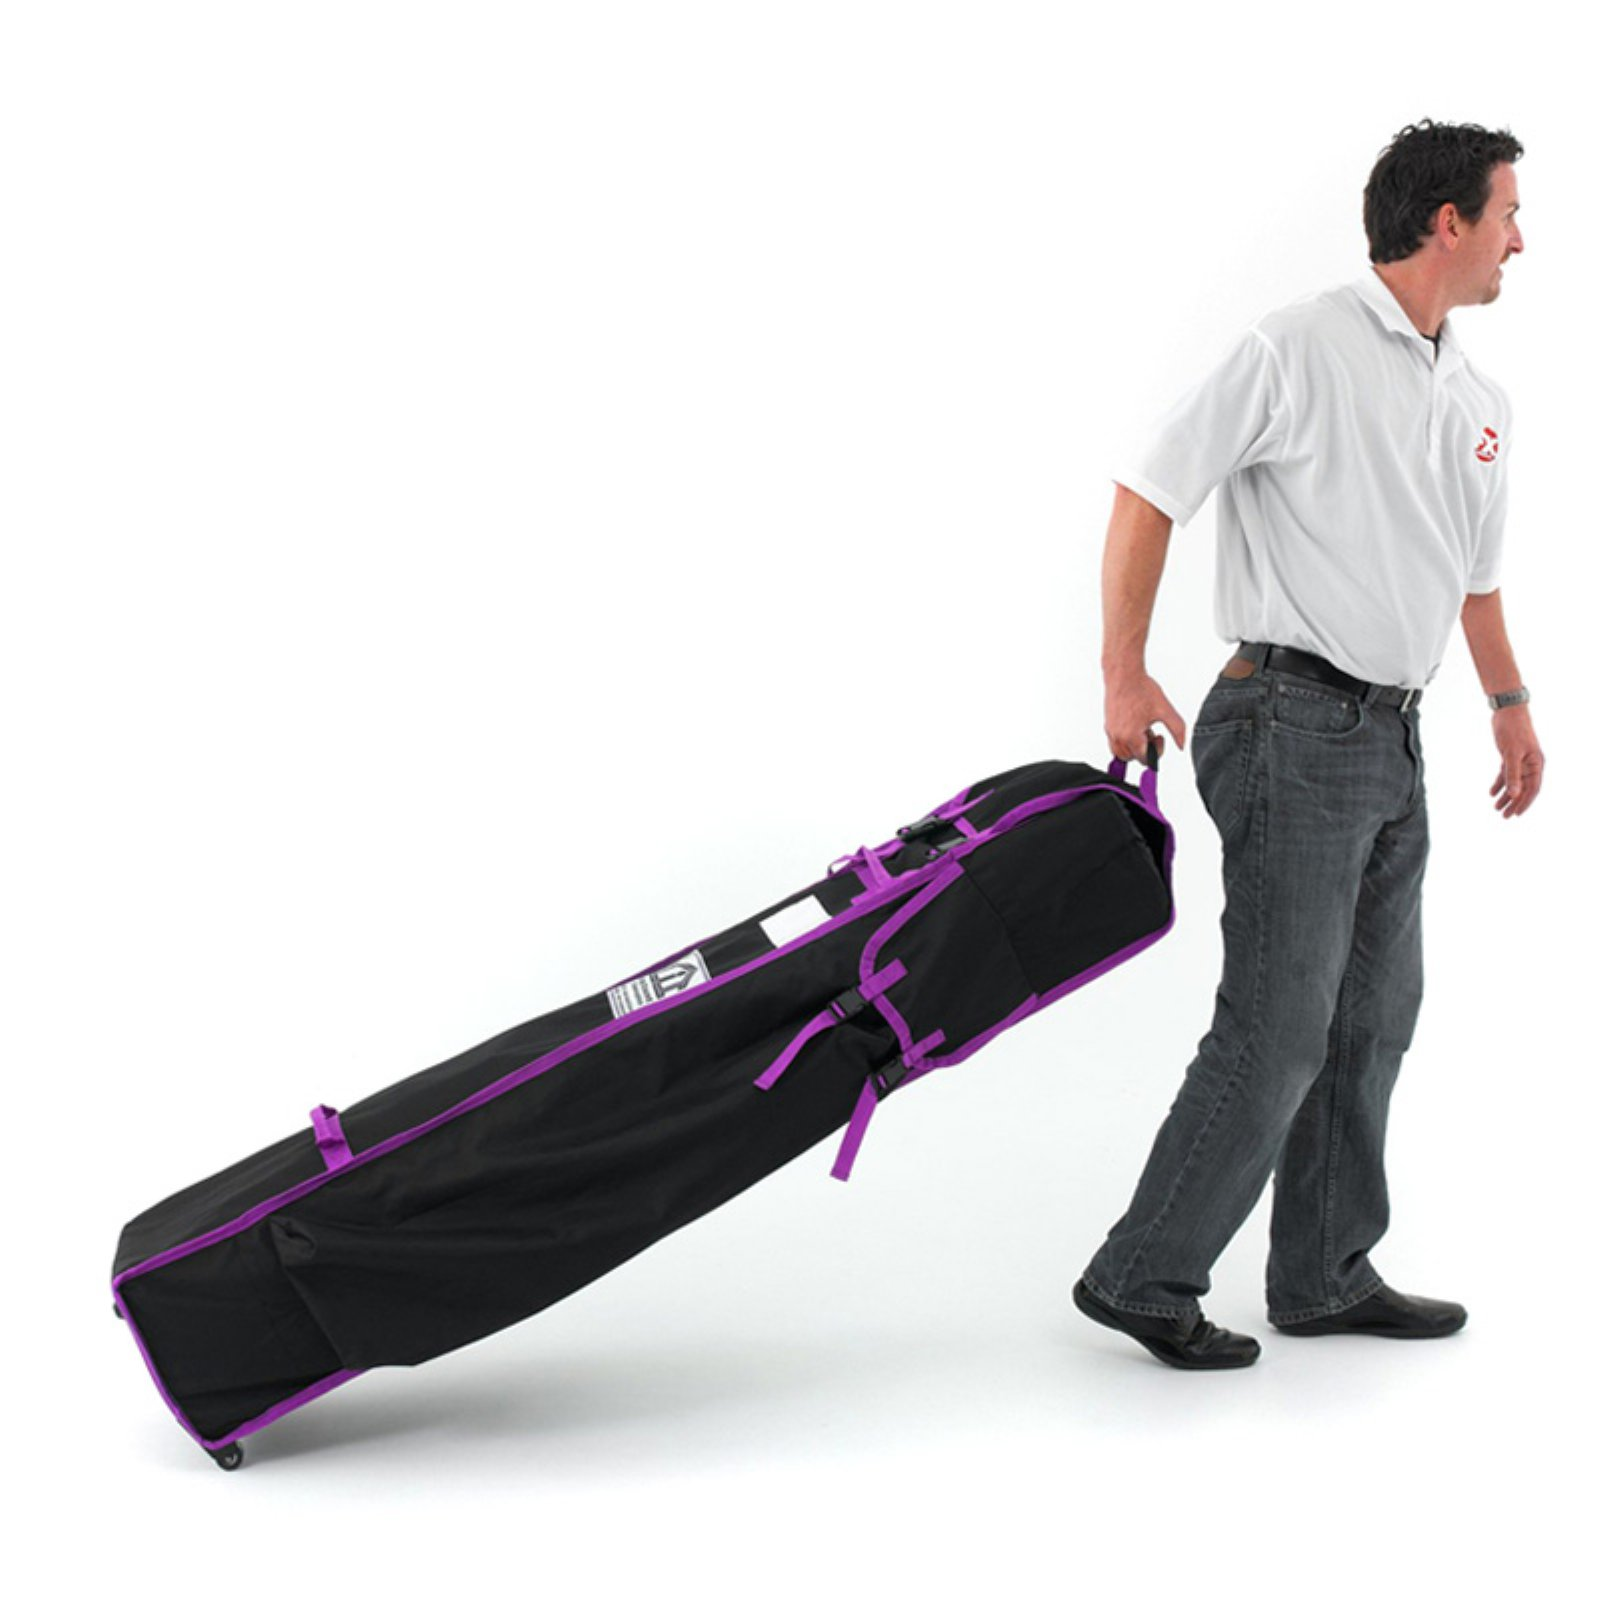 Impact Canopy Roller Bag for Pop Up Tent, Wheeled Storage Bag with Handles for 10 x 10 Canopy